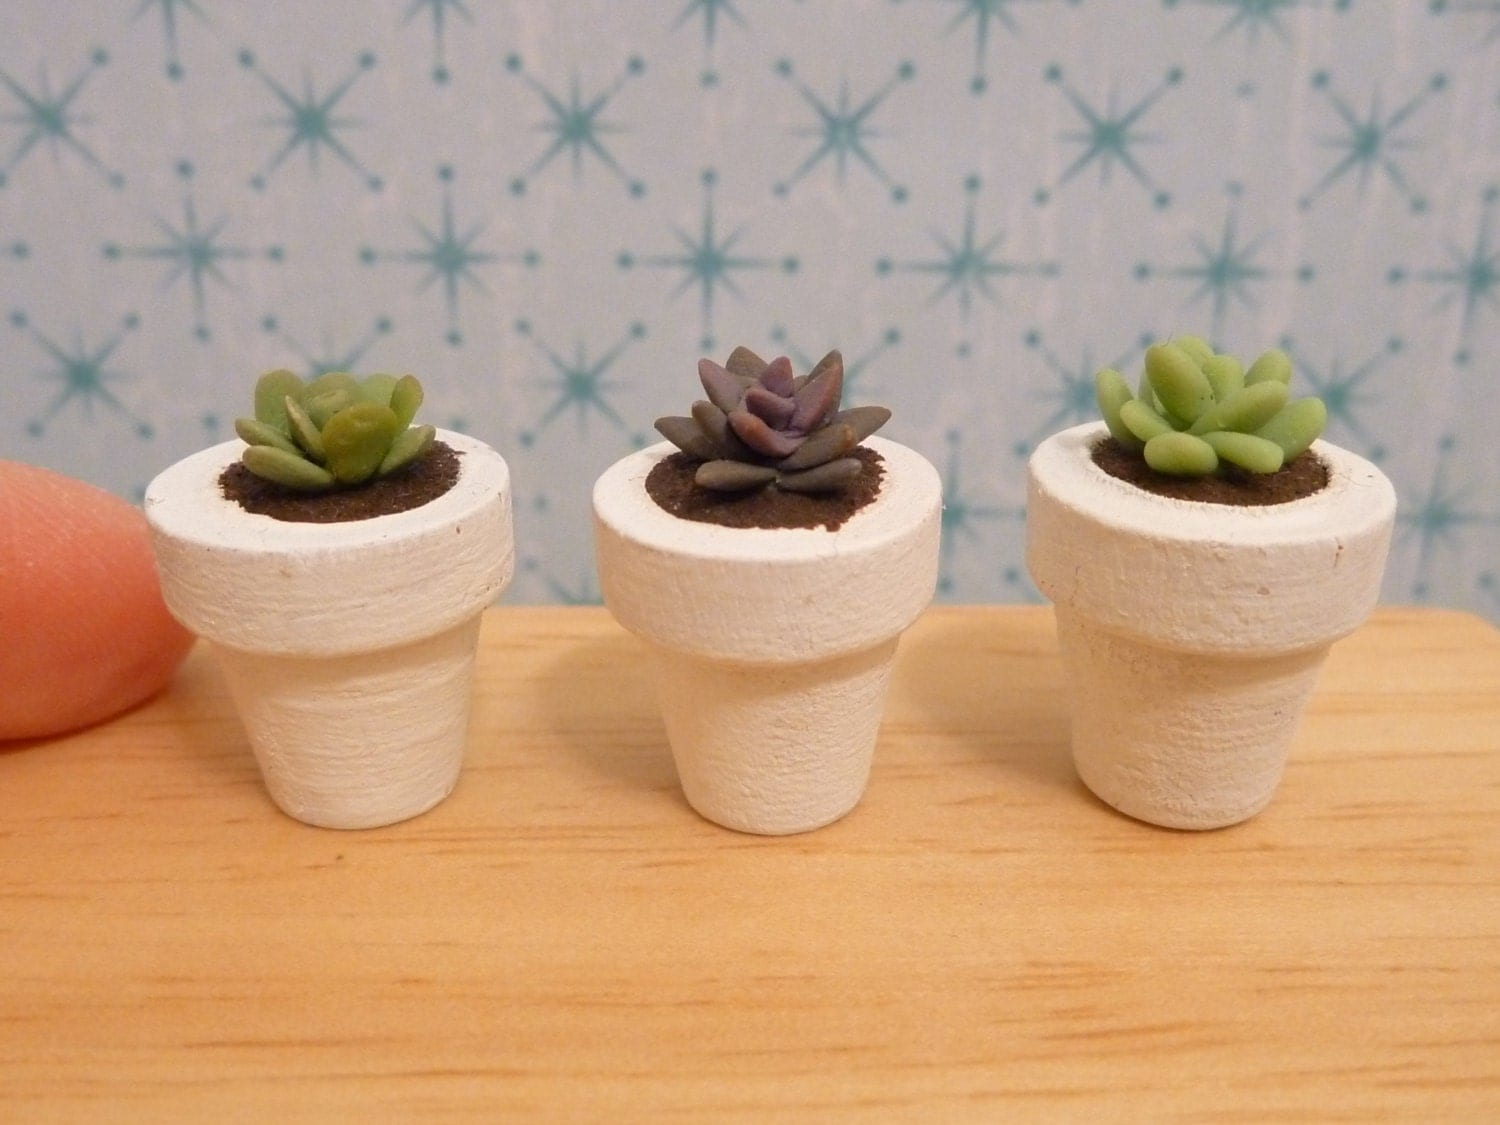 Miniature Dollhouse 3 Succulent Plant in a Pot - MinnieKitchen